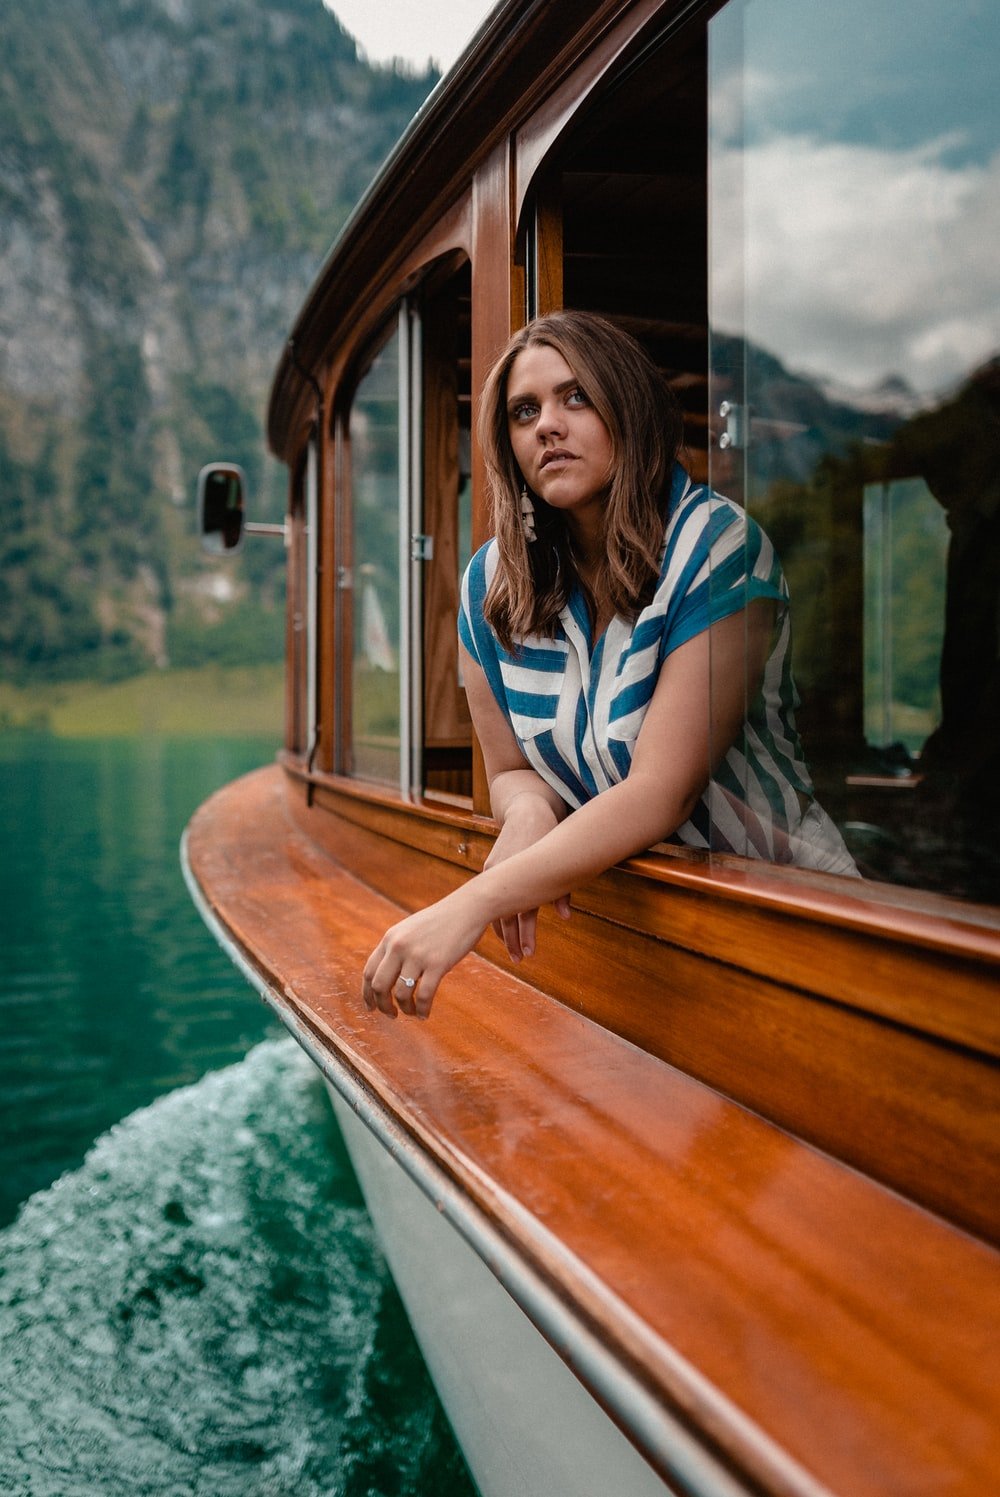 woman in blue and white stripe shirt sitting on brown wooden boat